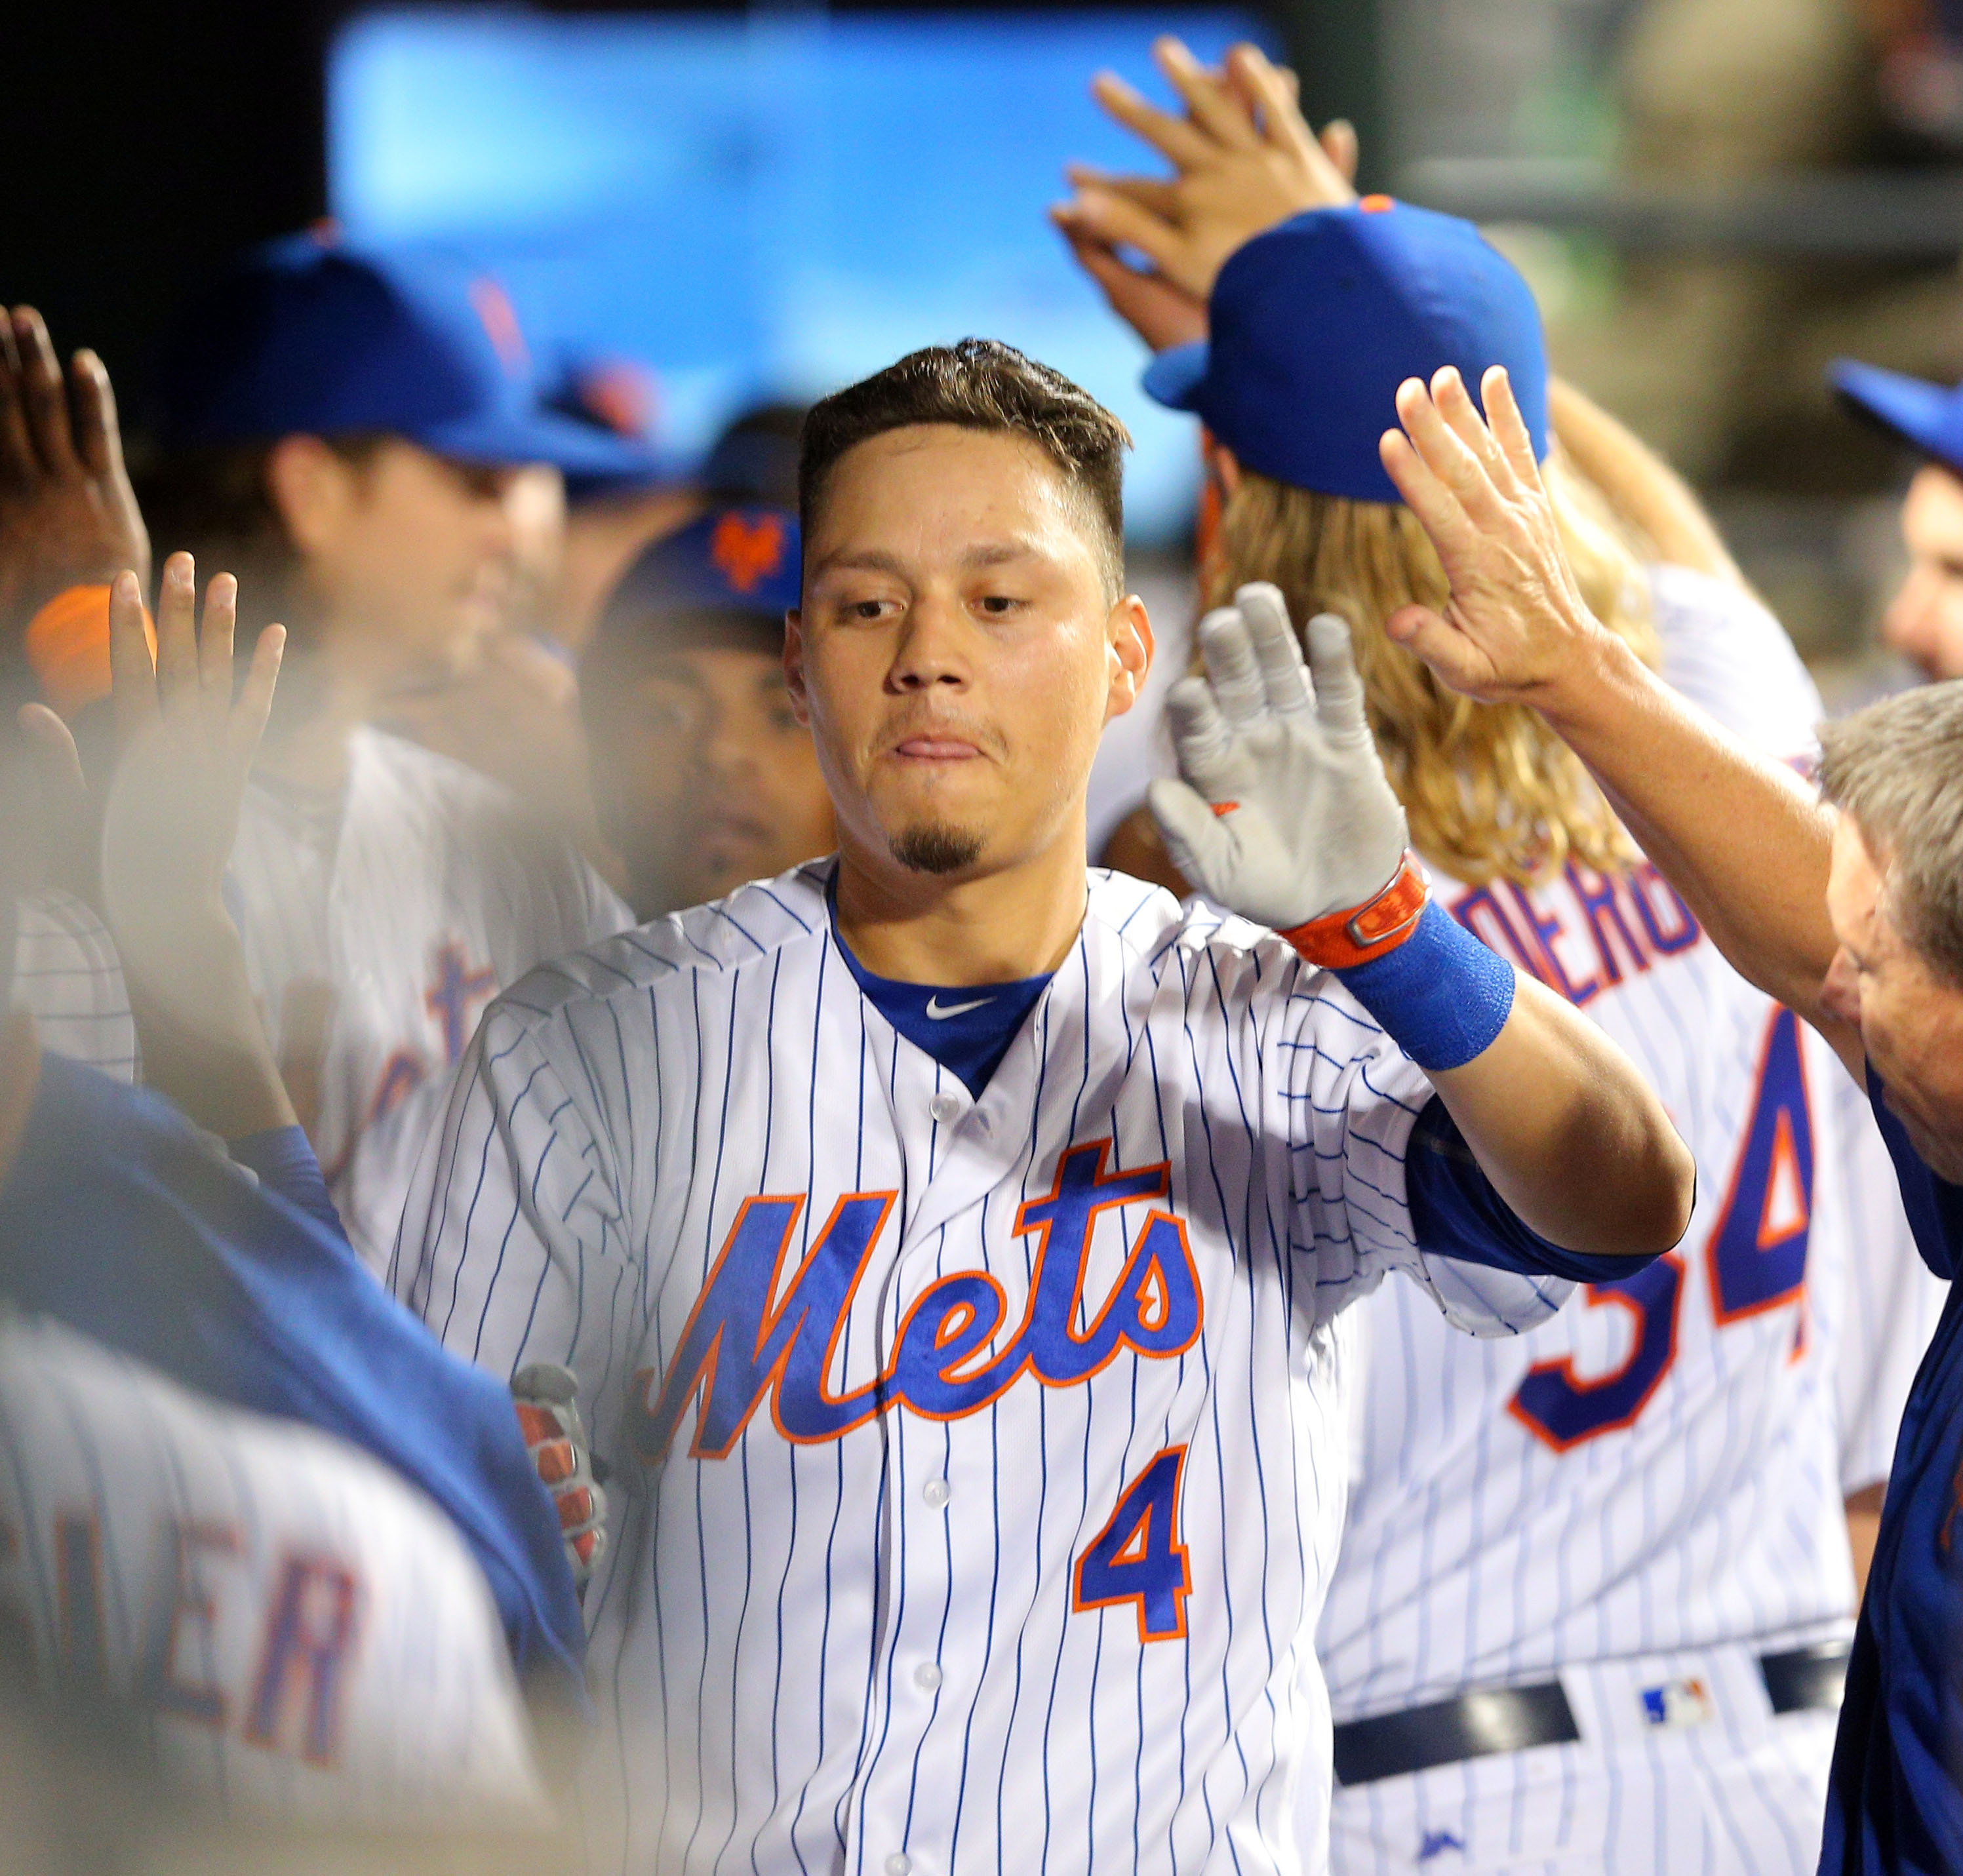 Wilmer Flores wins arbitration case against the Mets, awarded $2.2 million